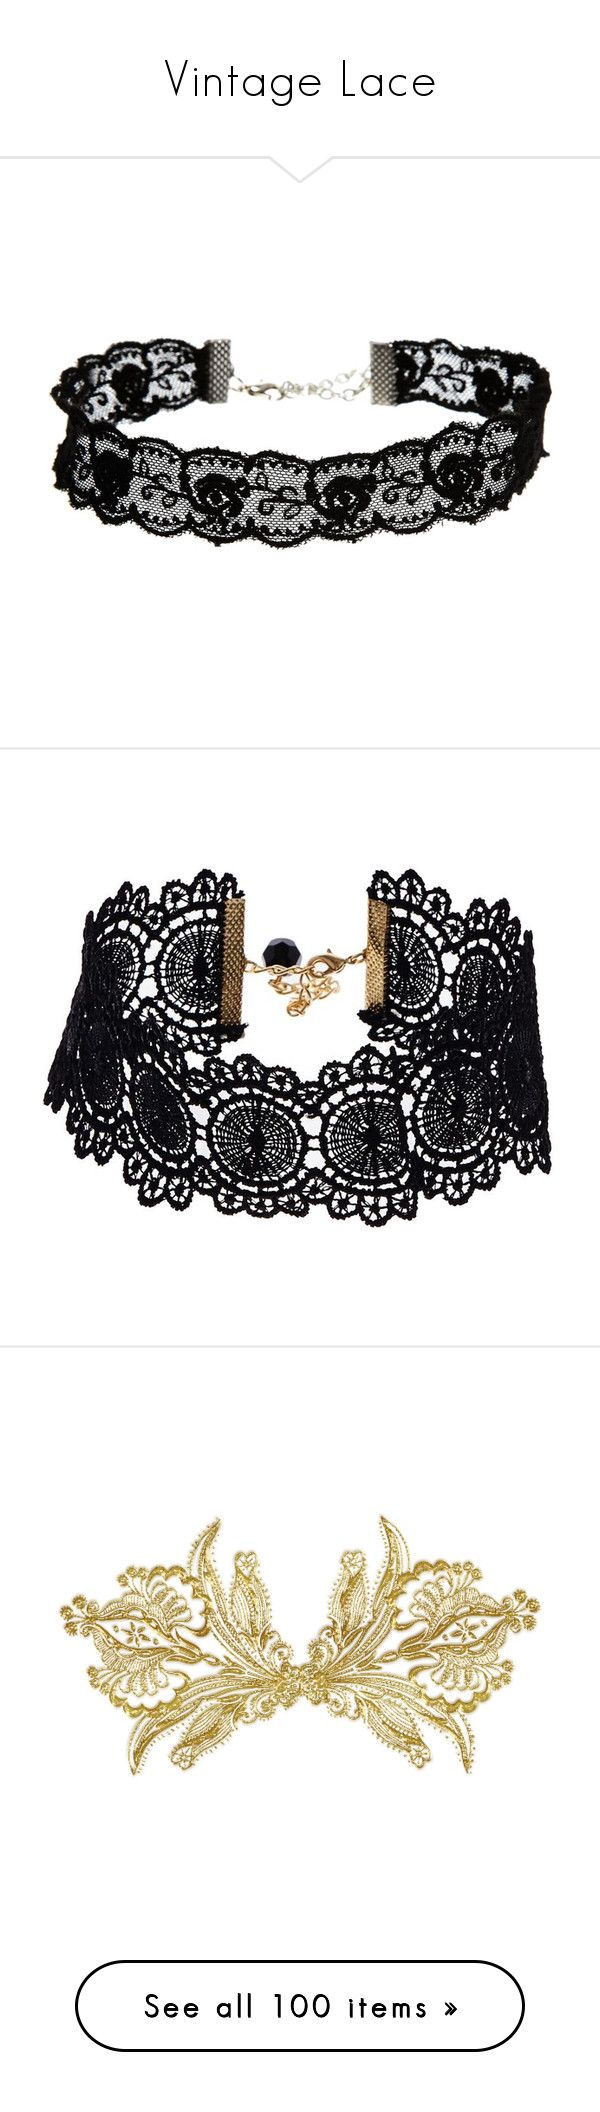 """""""Vintage Lace"""" by jewelsinthecrown ❤ liked on Polyvore featuring jewelry, necklaces, accessories, chokers, black, choker jewelry, lace necklace, adjustable necklace, asos necklace and floral jewelry"""